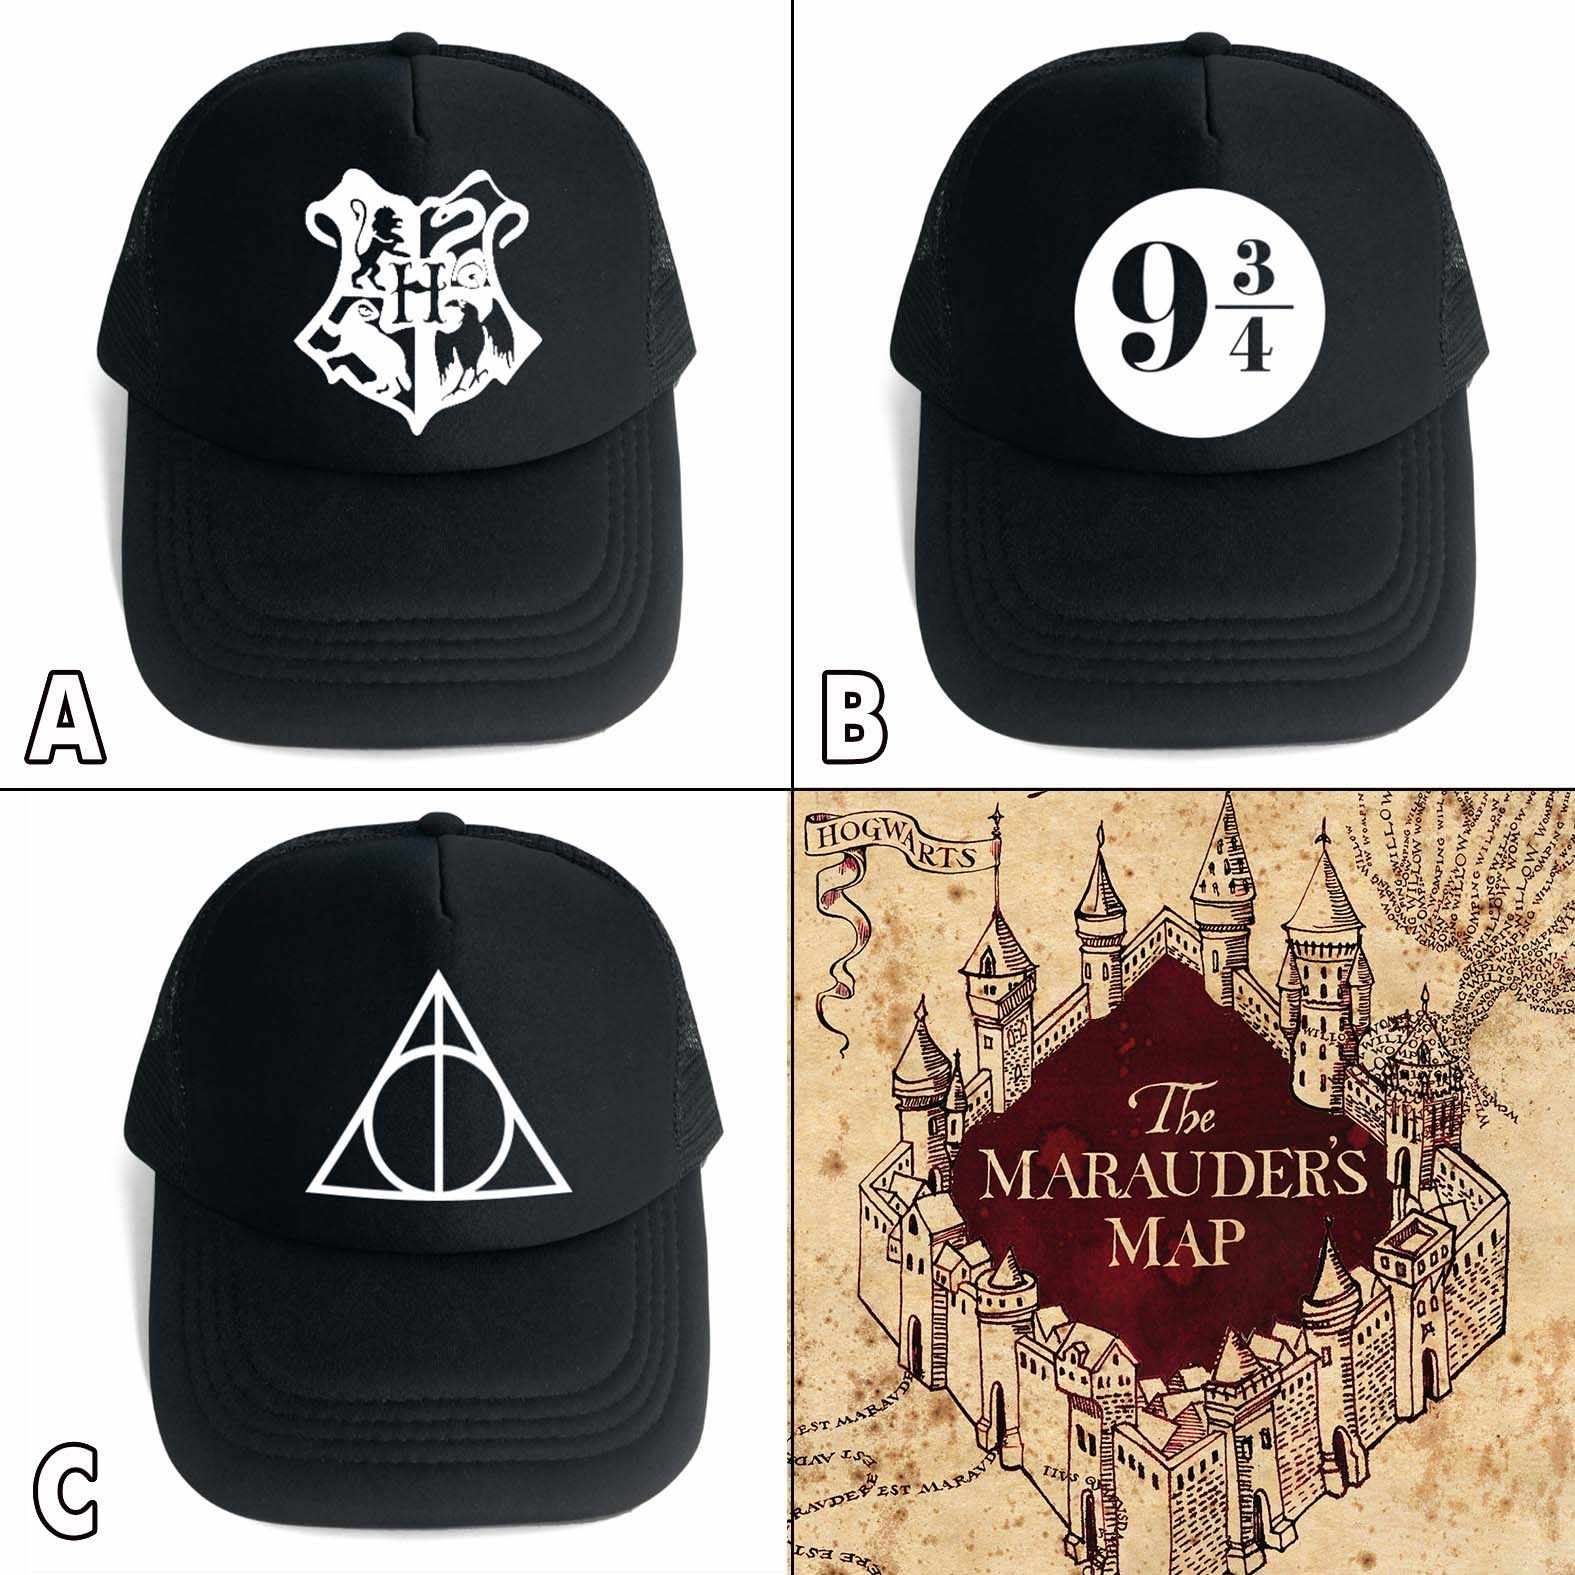 c281dffc866 OHCOMICS For Harri Potter Fan HP Harry Hogwarts Deathly Hallows Black  Cotton+Polyester Hat Cap